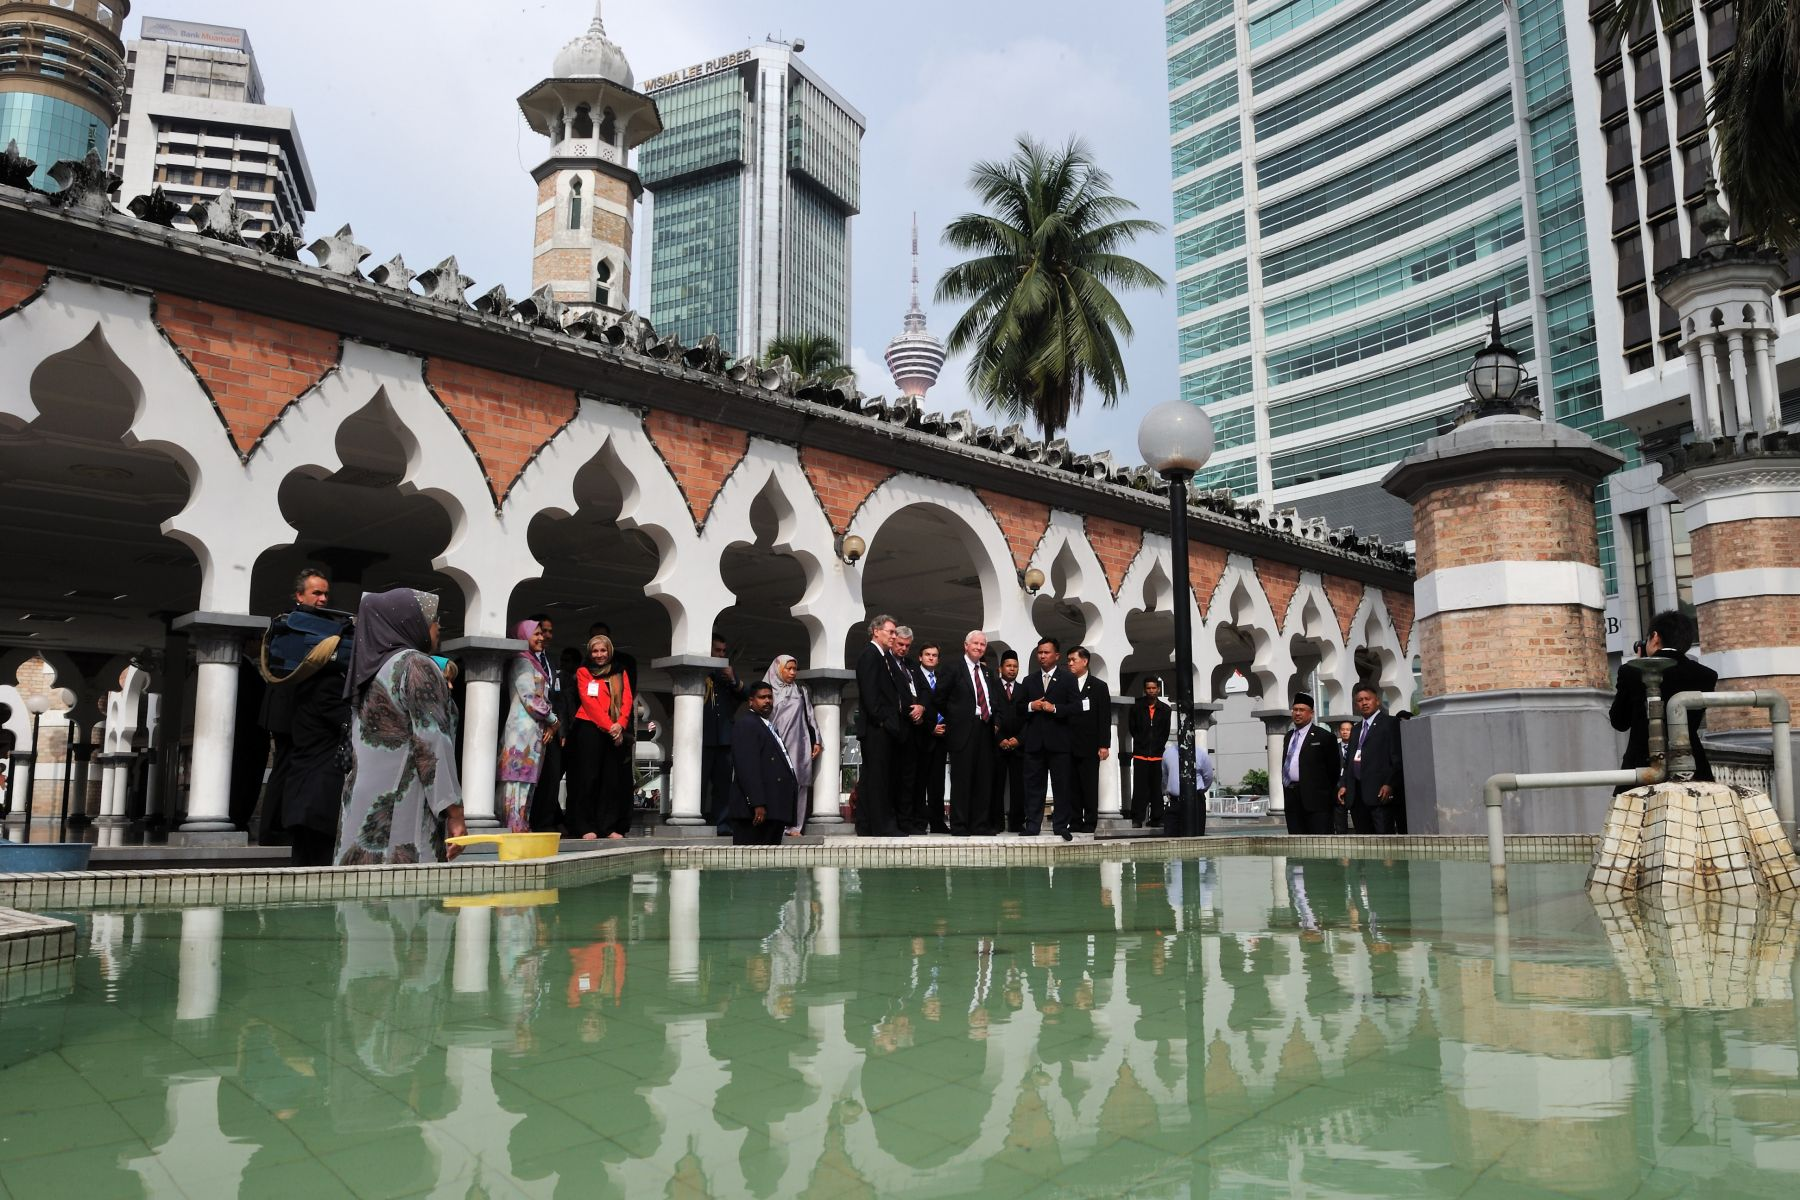 His Excellency, escorted by Imam Ustaz Mohd Faisal Tan Bin Mutalib, took part in a walking tour of the Masjid Jamek Mosque.